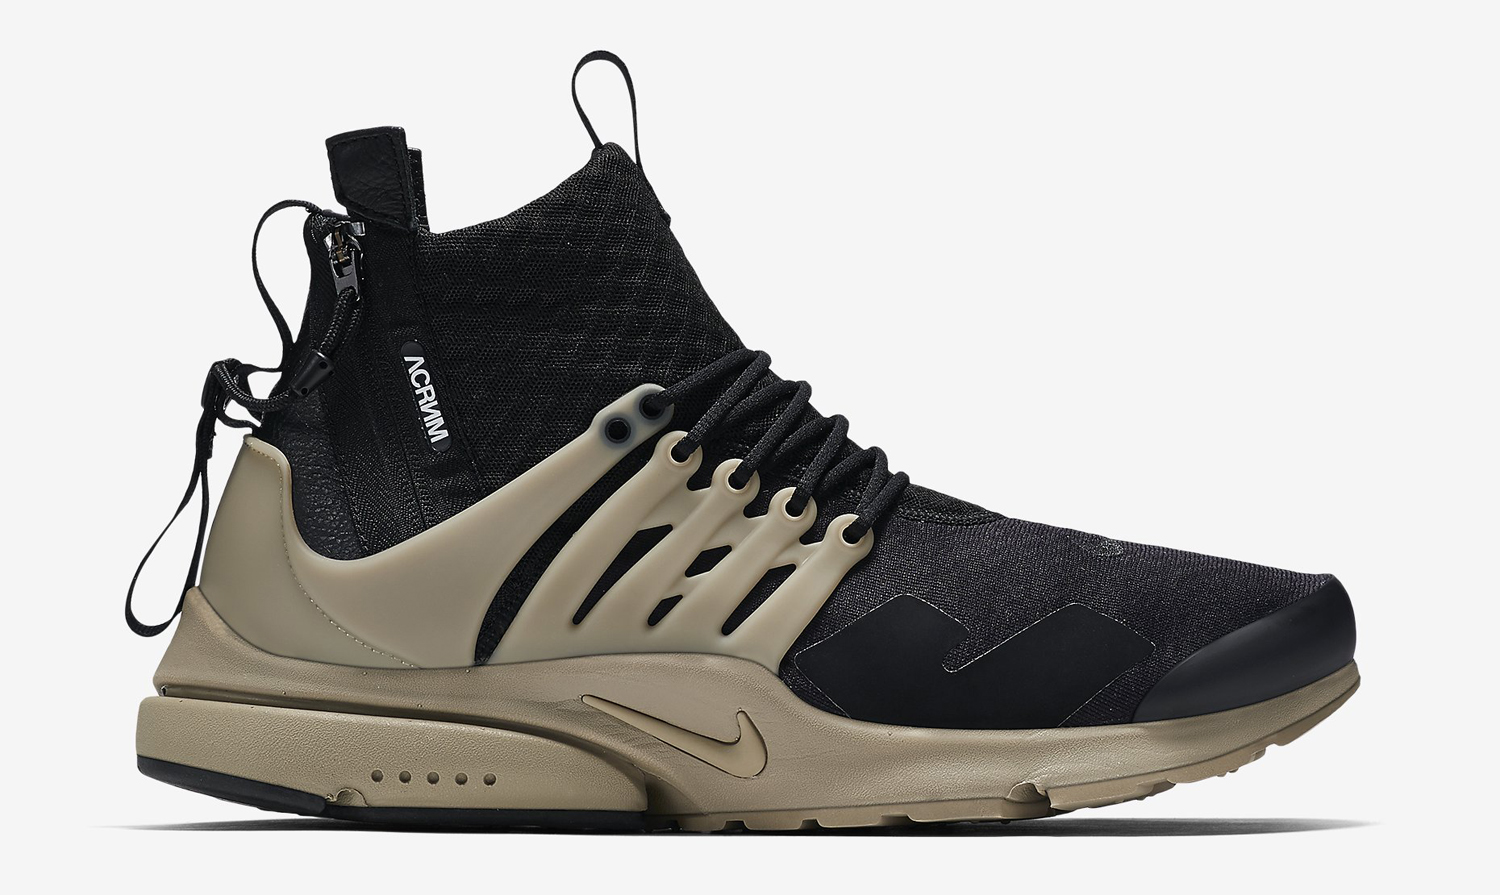 Acronym Nike Air Presto 844672-001 Profile